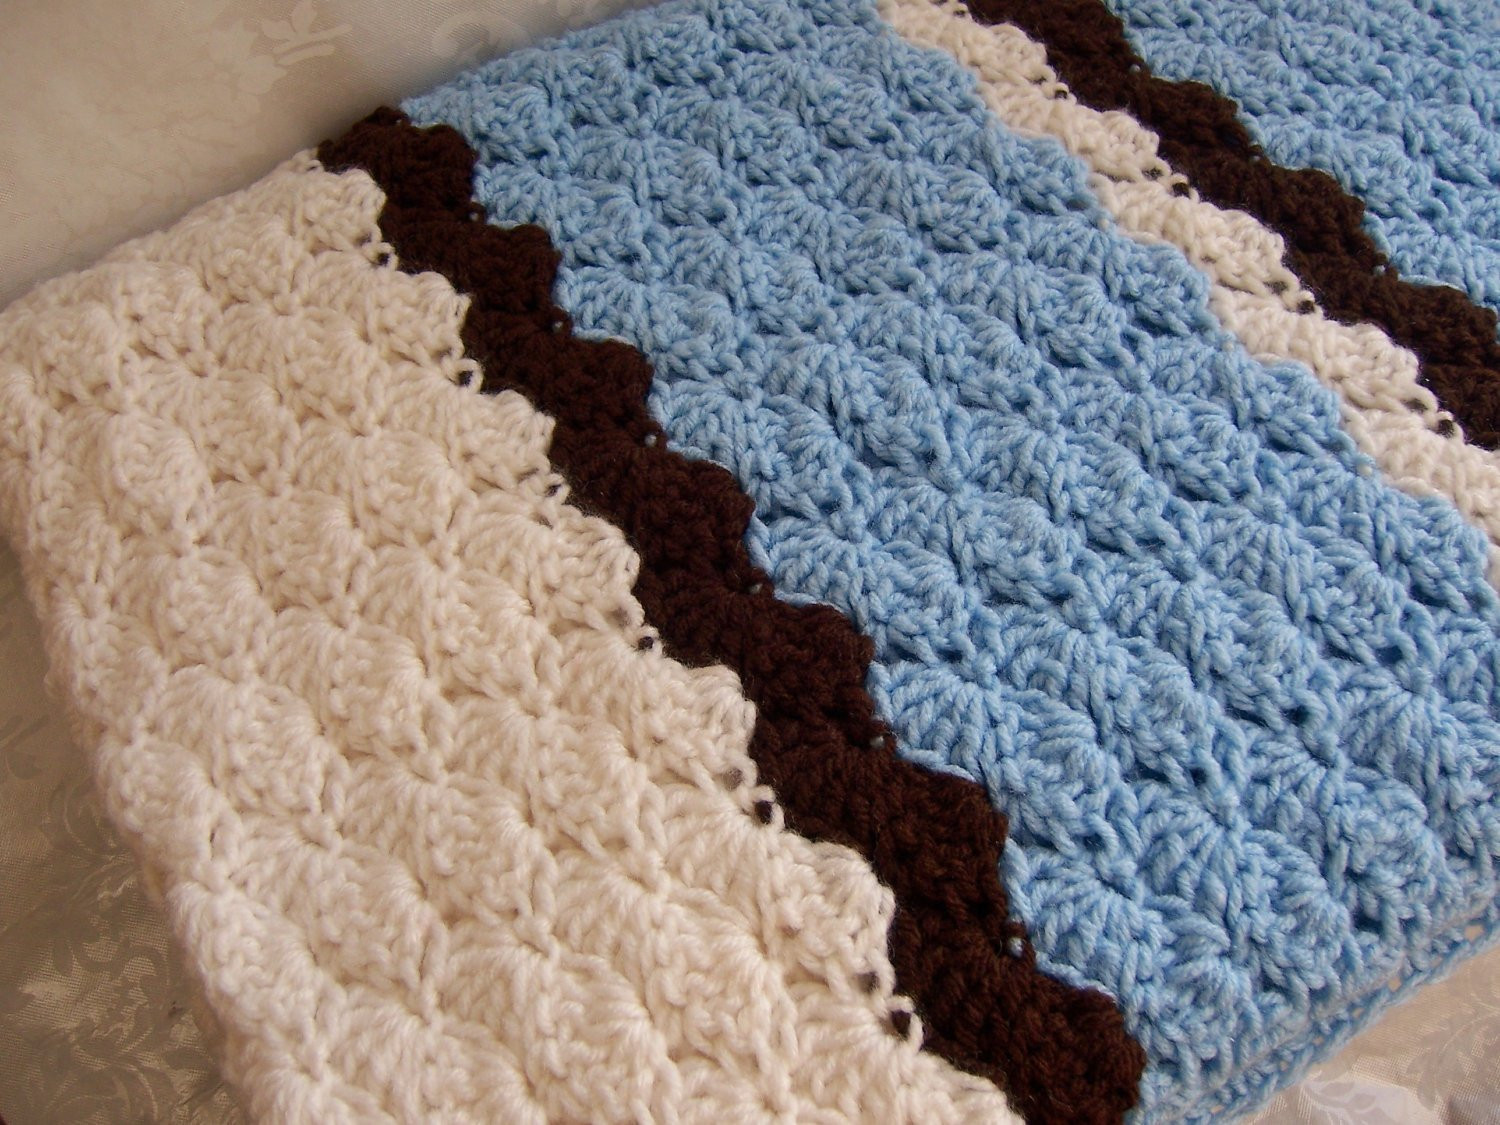 New Sale Crochet Baby Blanket Shell Pattern In Baby Blue Shell Stitch Baby Blanket Of Brilliant 49 Images Shell Stitch Baby Blanket